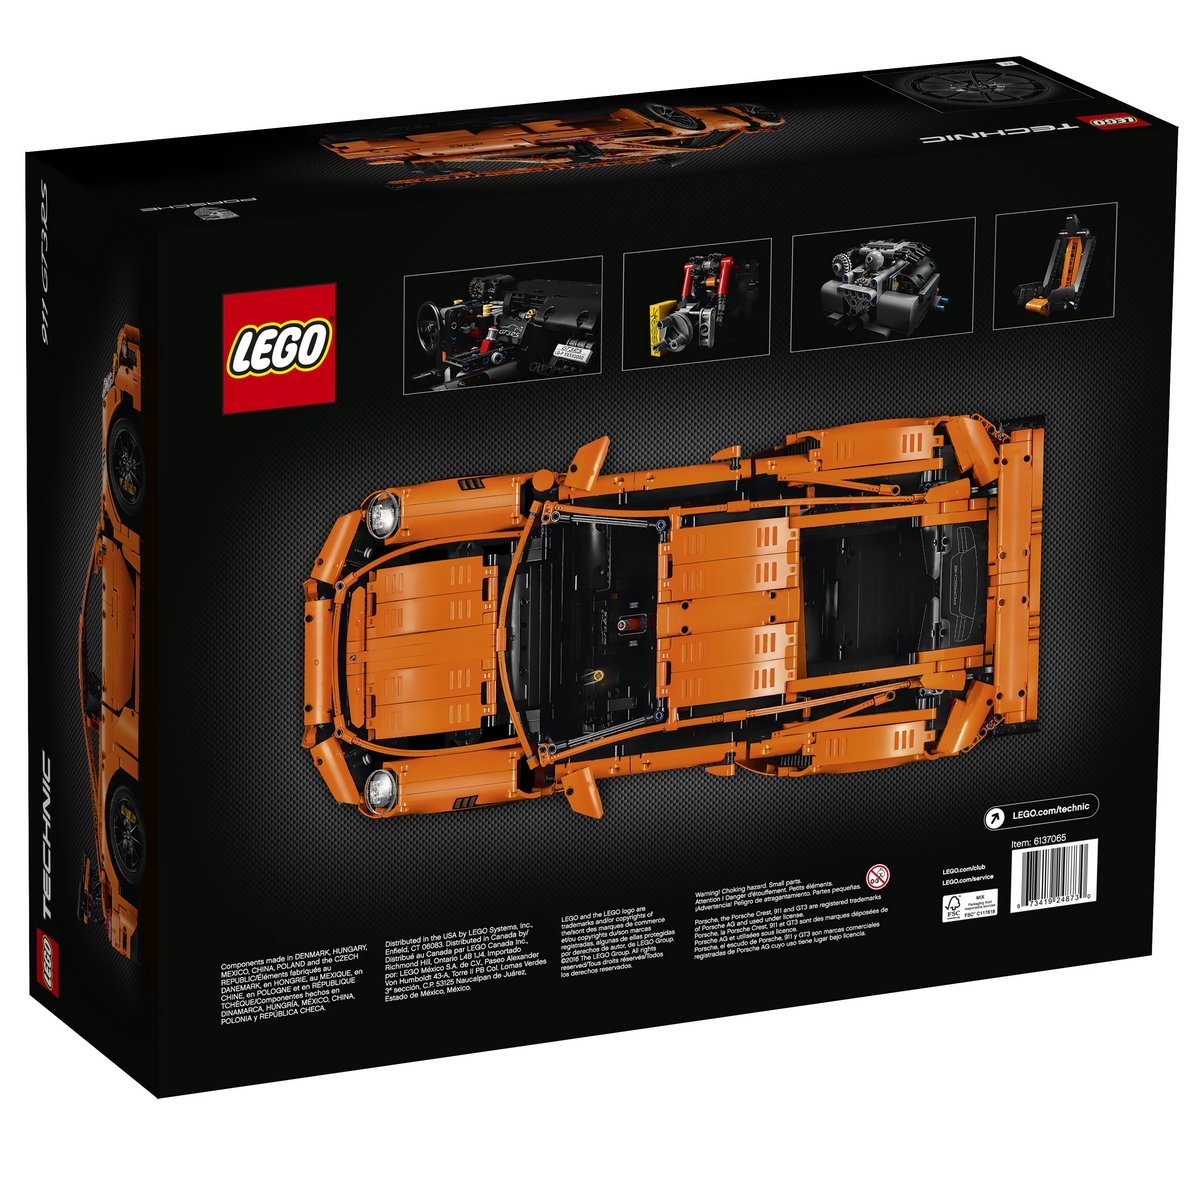 LEGO Technic Set 42056 Porsche 911 GT3 RS Box Back View